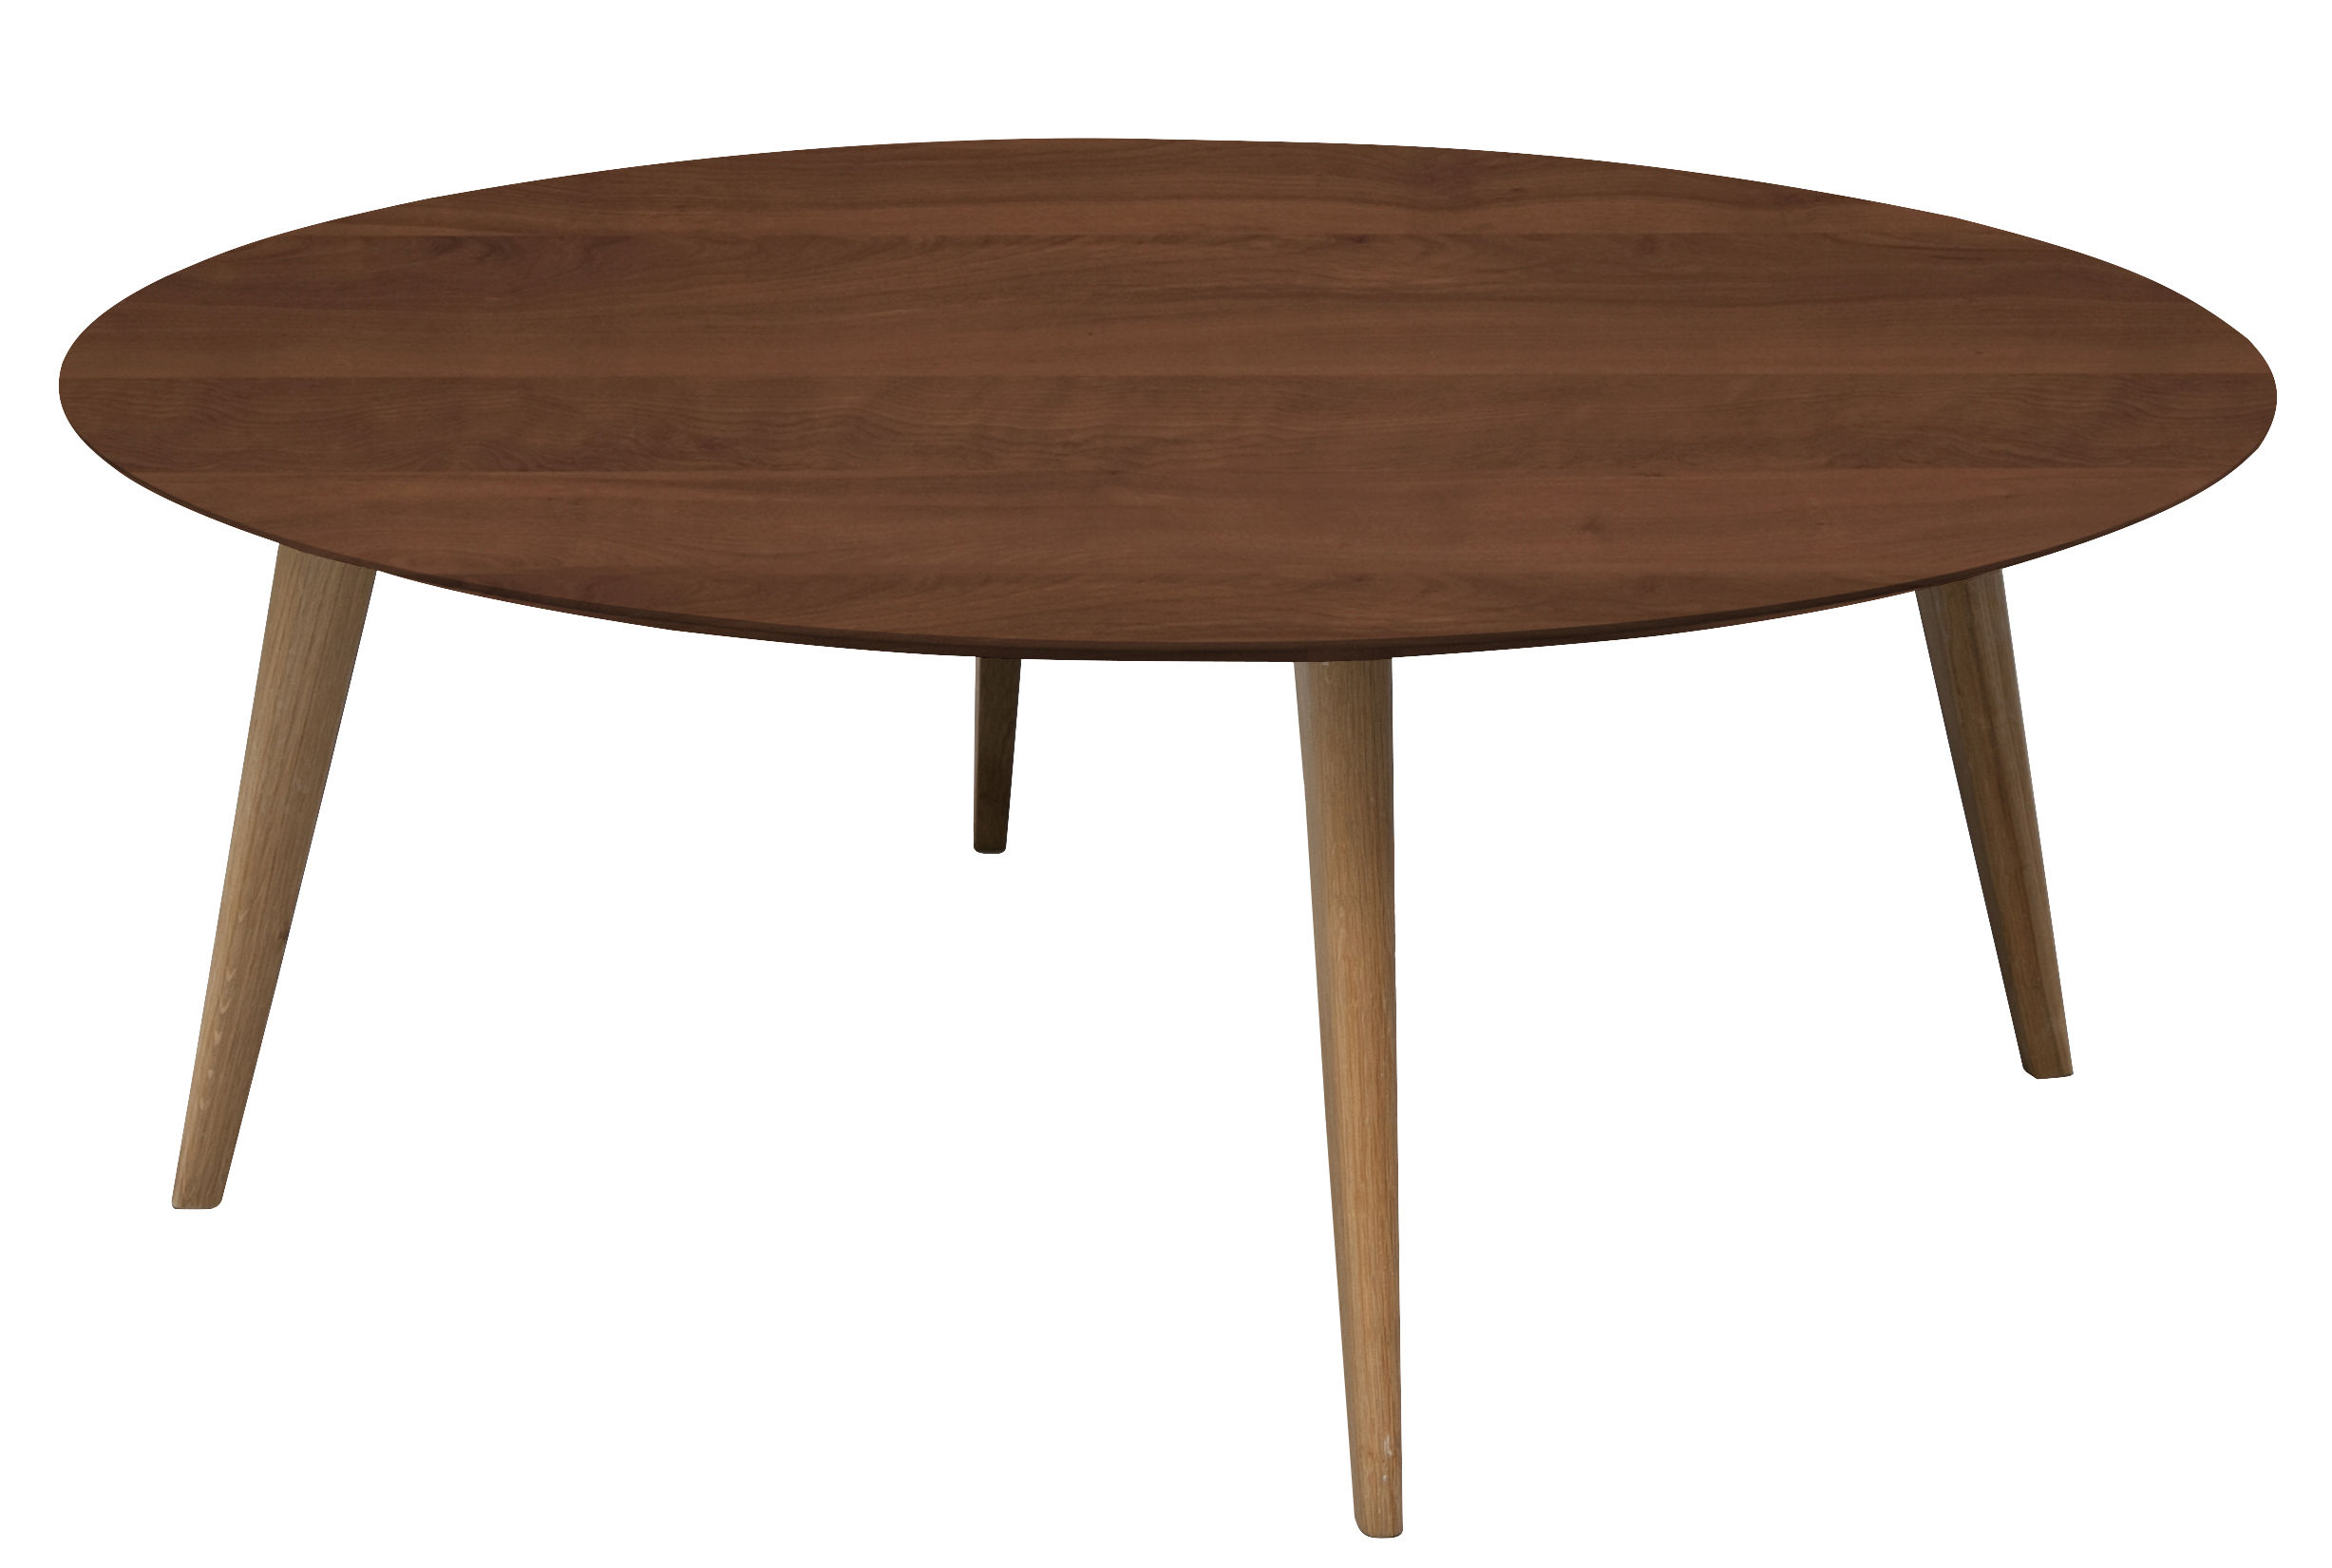 Table basse lalinde ronde xxl 95 cm noyer pieds for Table noyer 6 pieds